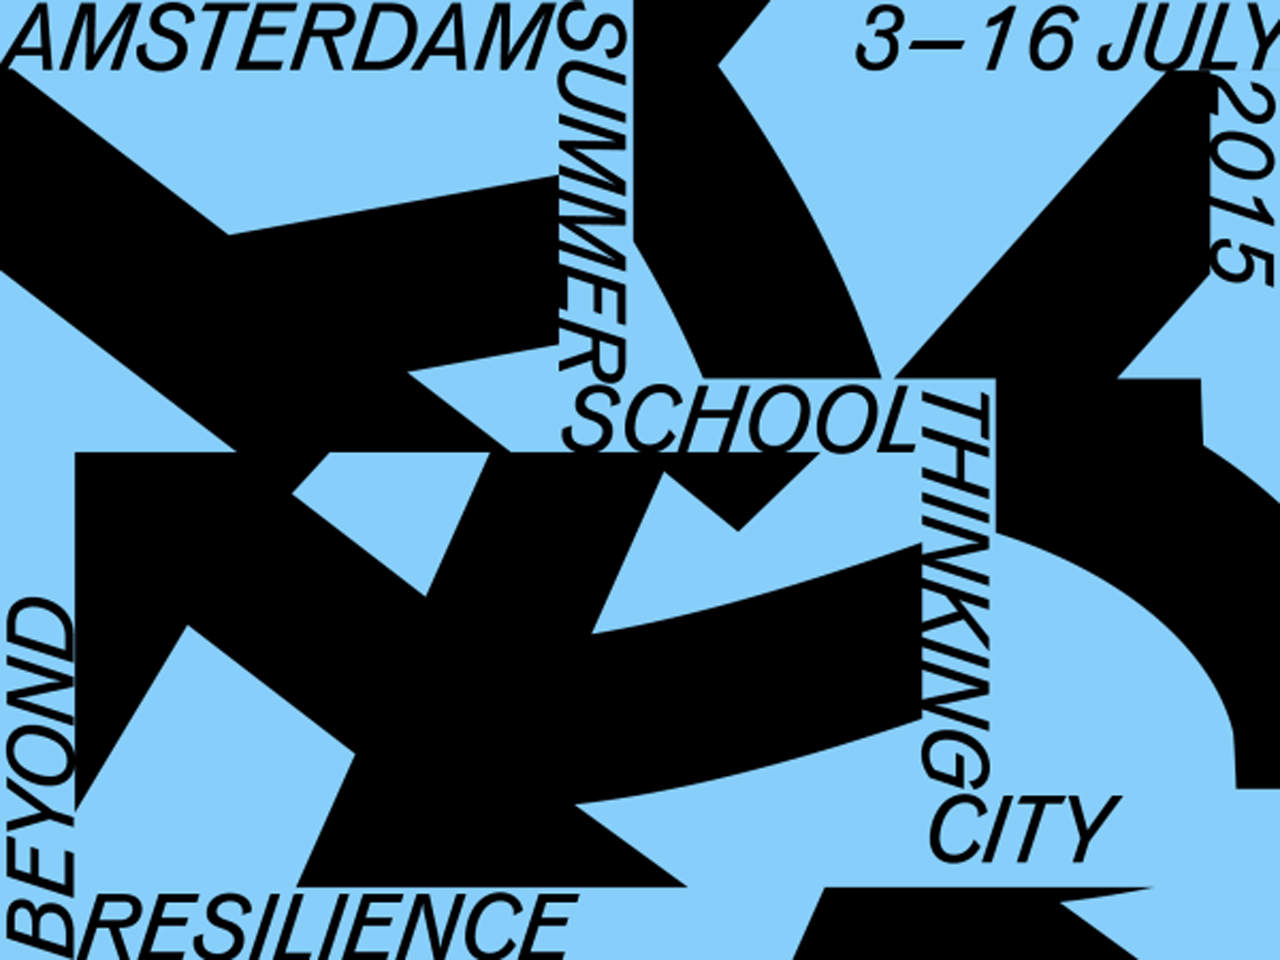 Jacob van Rijs to lecture on 'Architectural Democracy' in Amsterdam on July 6th